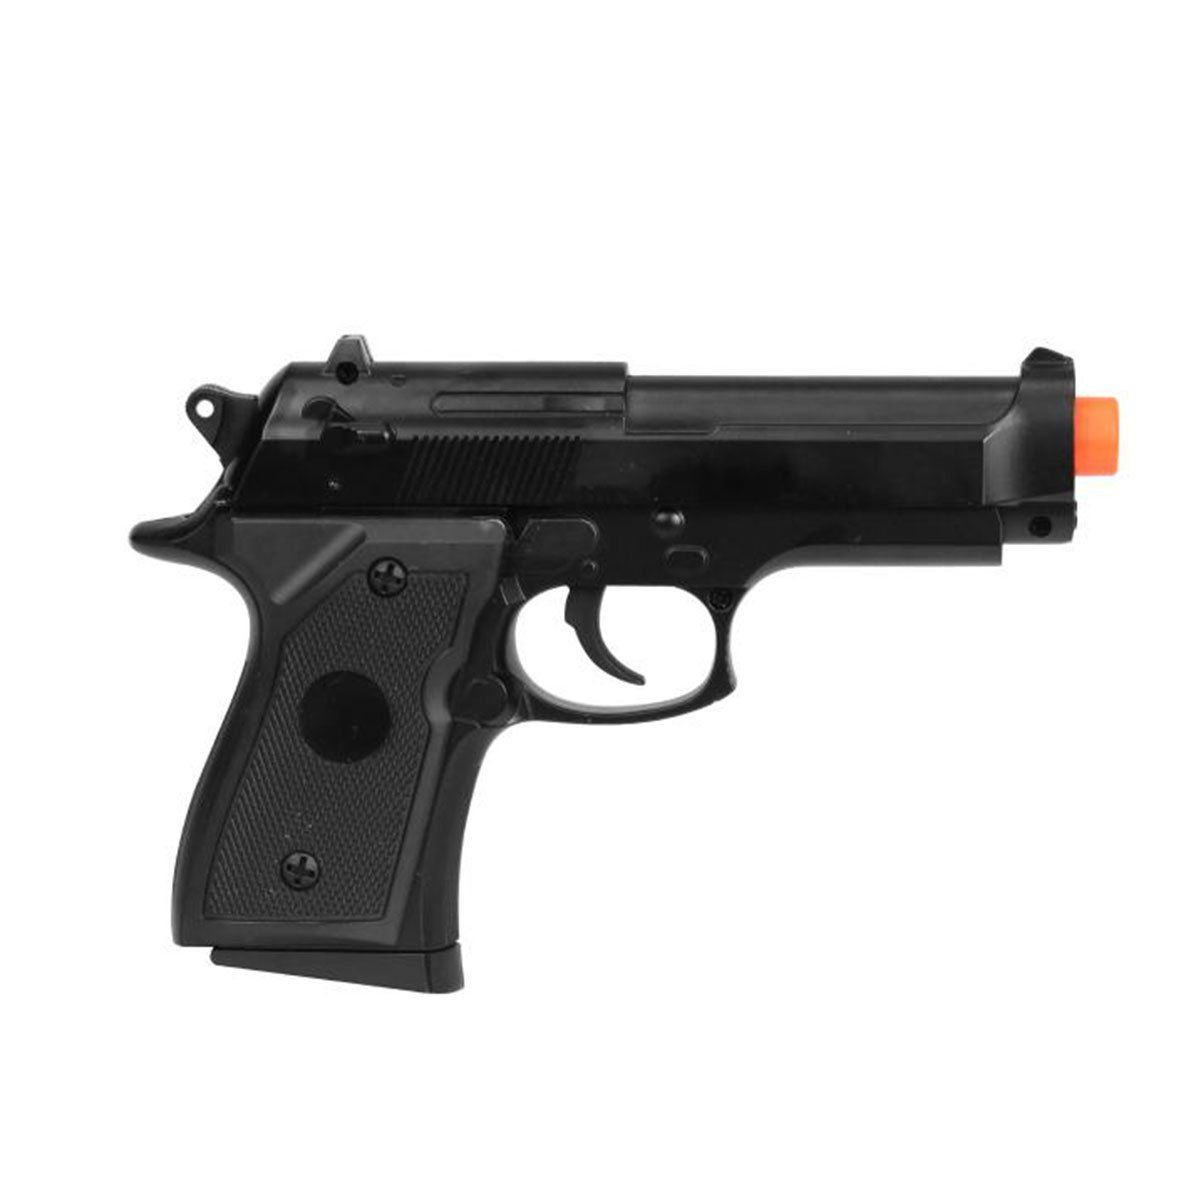 Pistola Airsoft Cyma ZM21 Beretta Full Metal Compact Spring